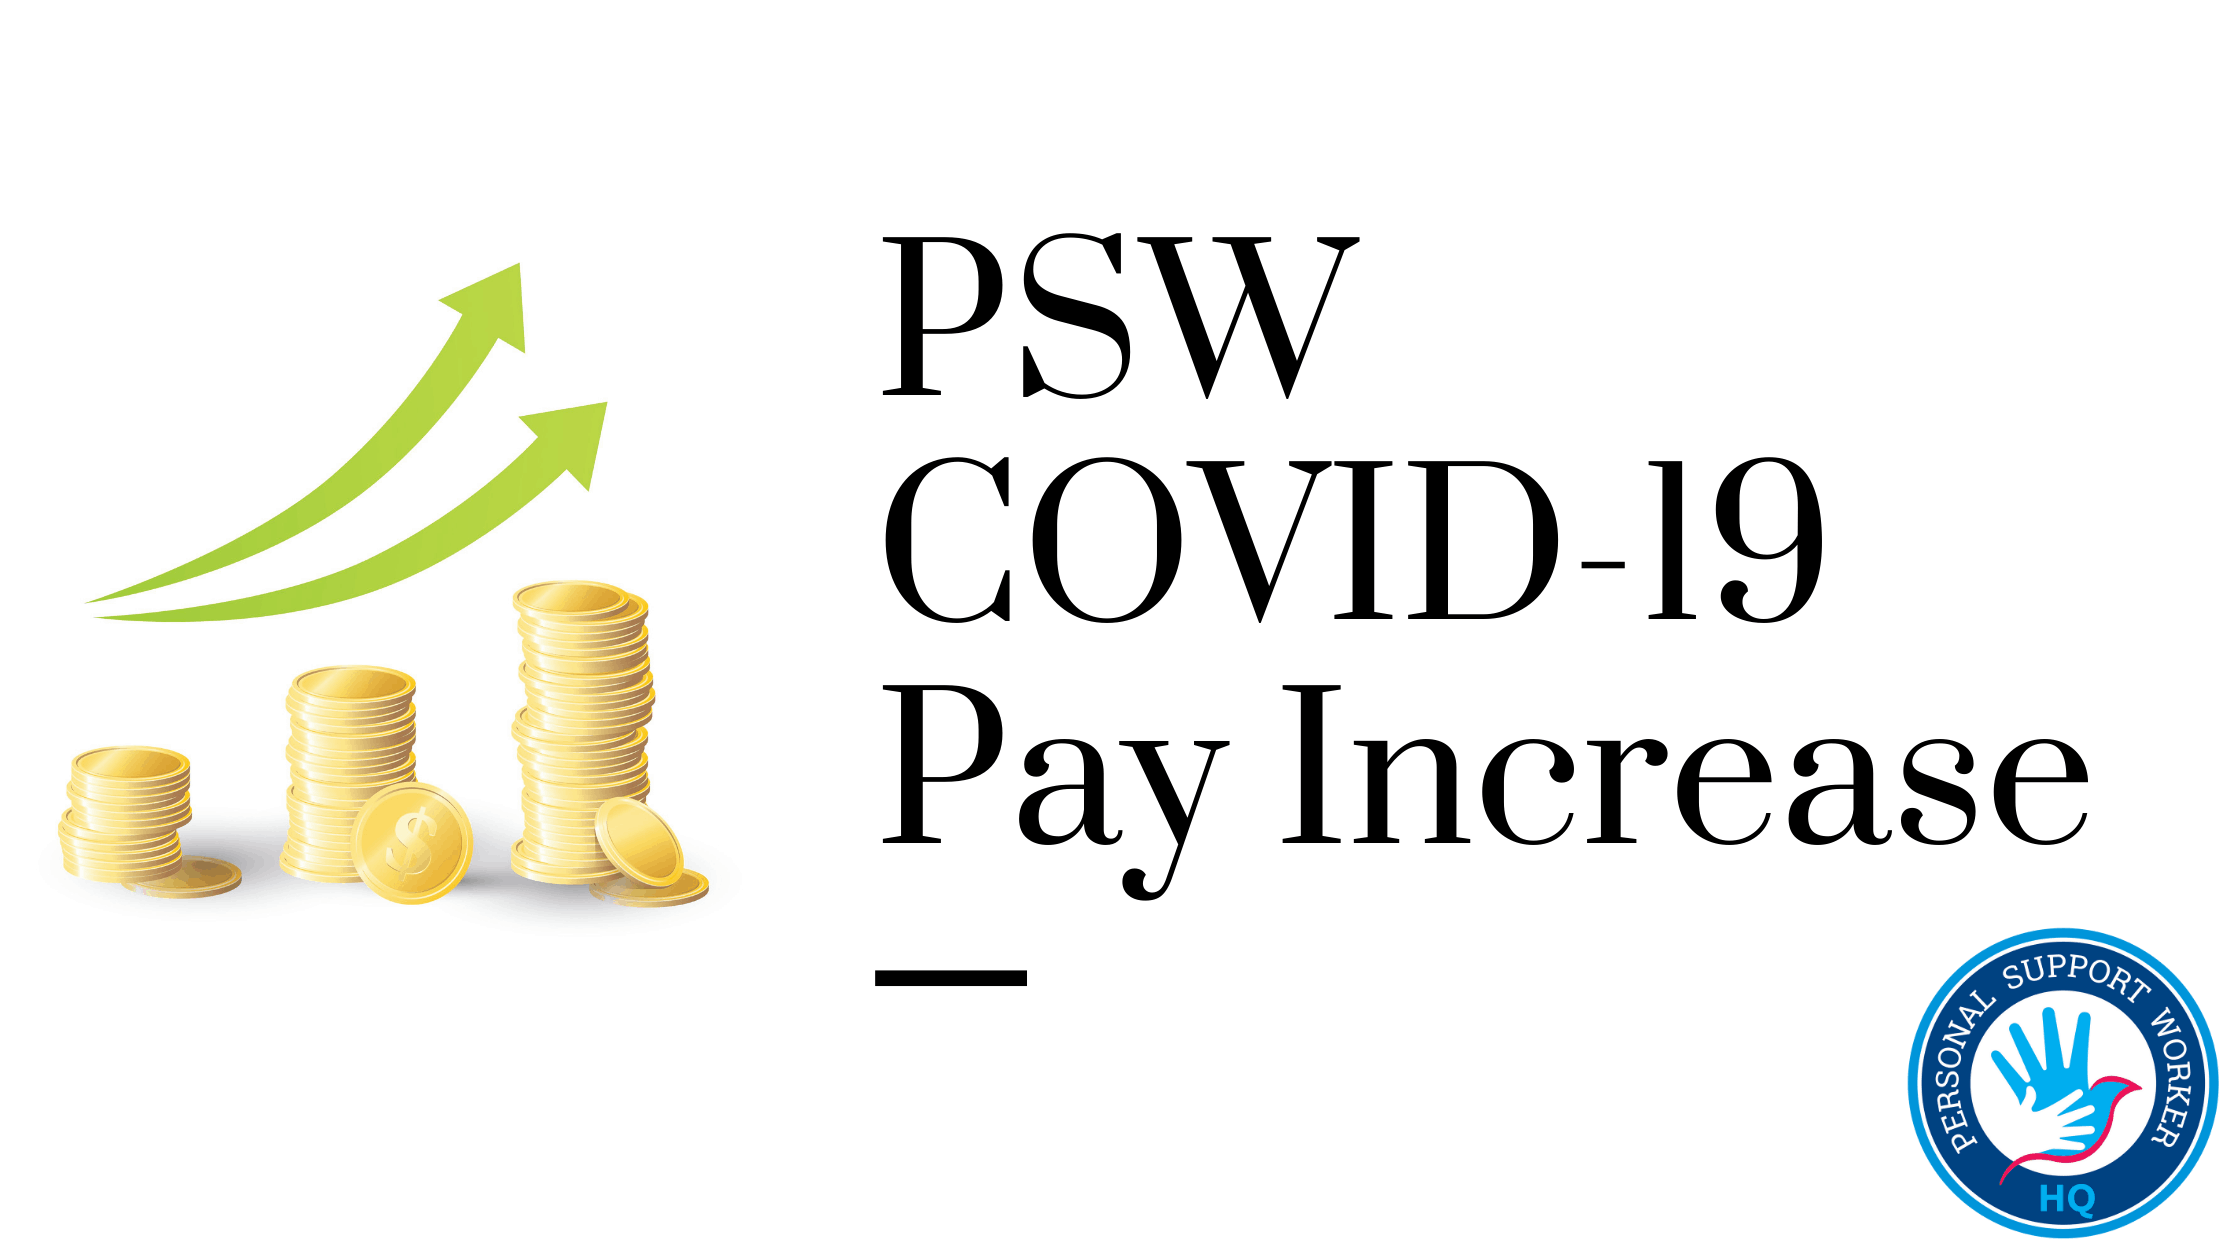 PSW COVID 19 pay increase